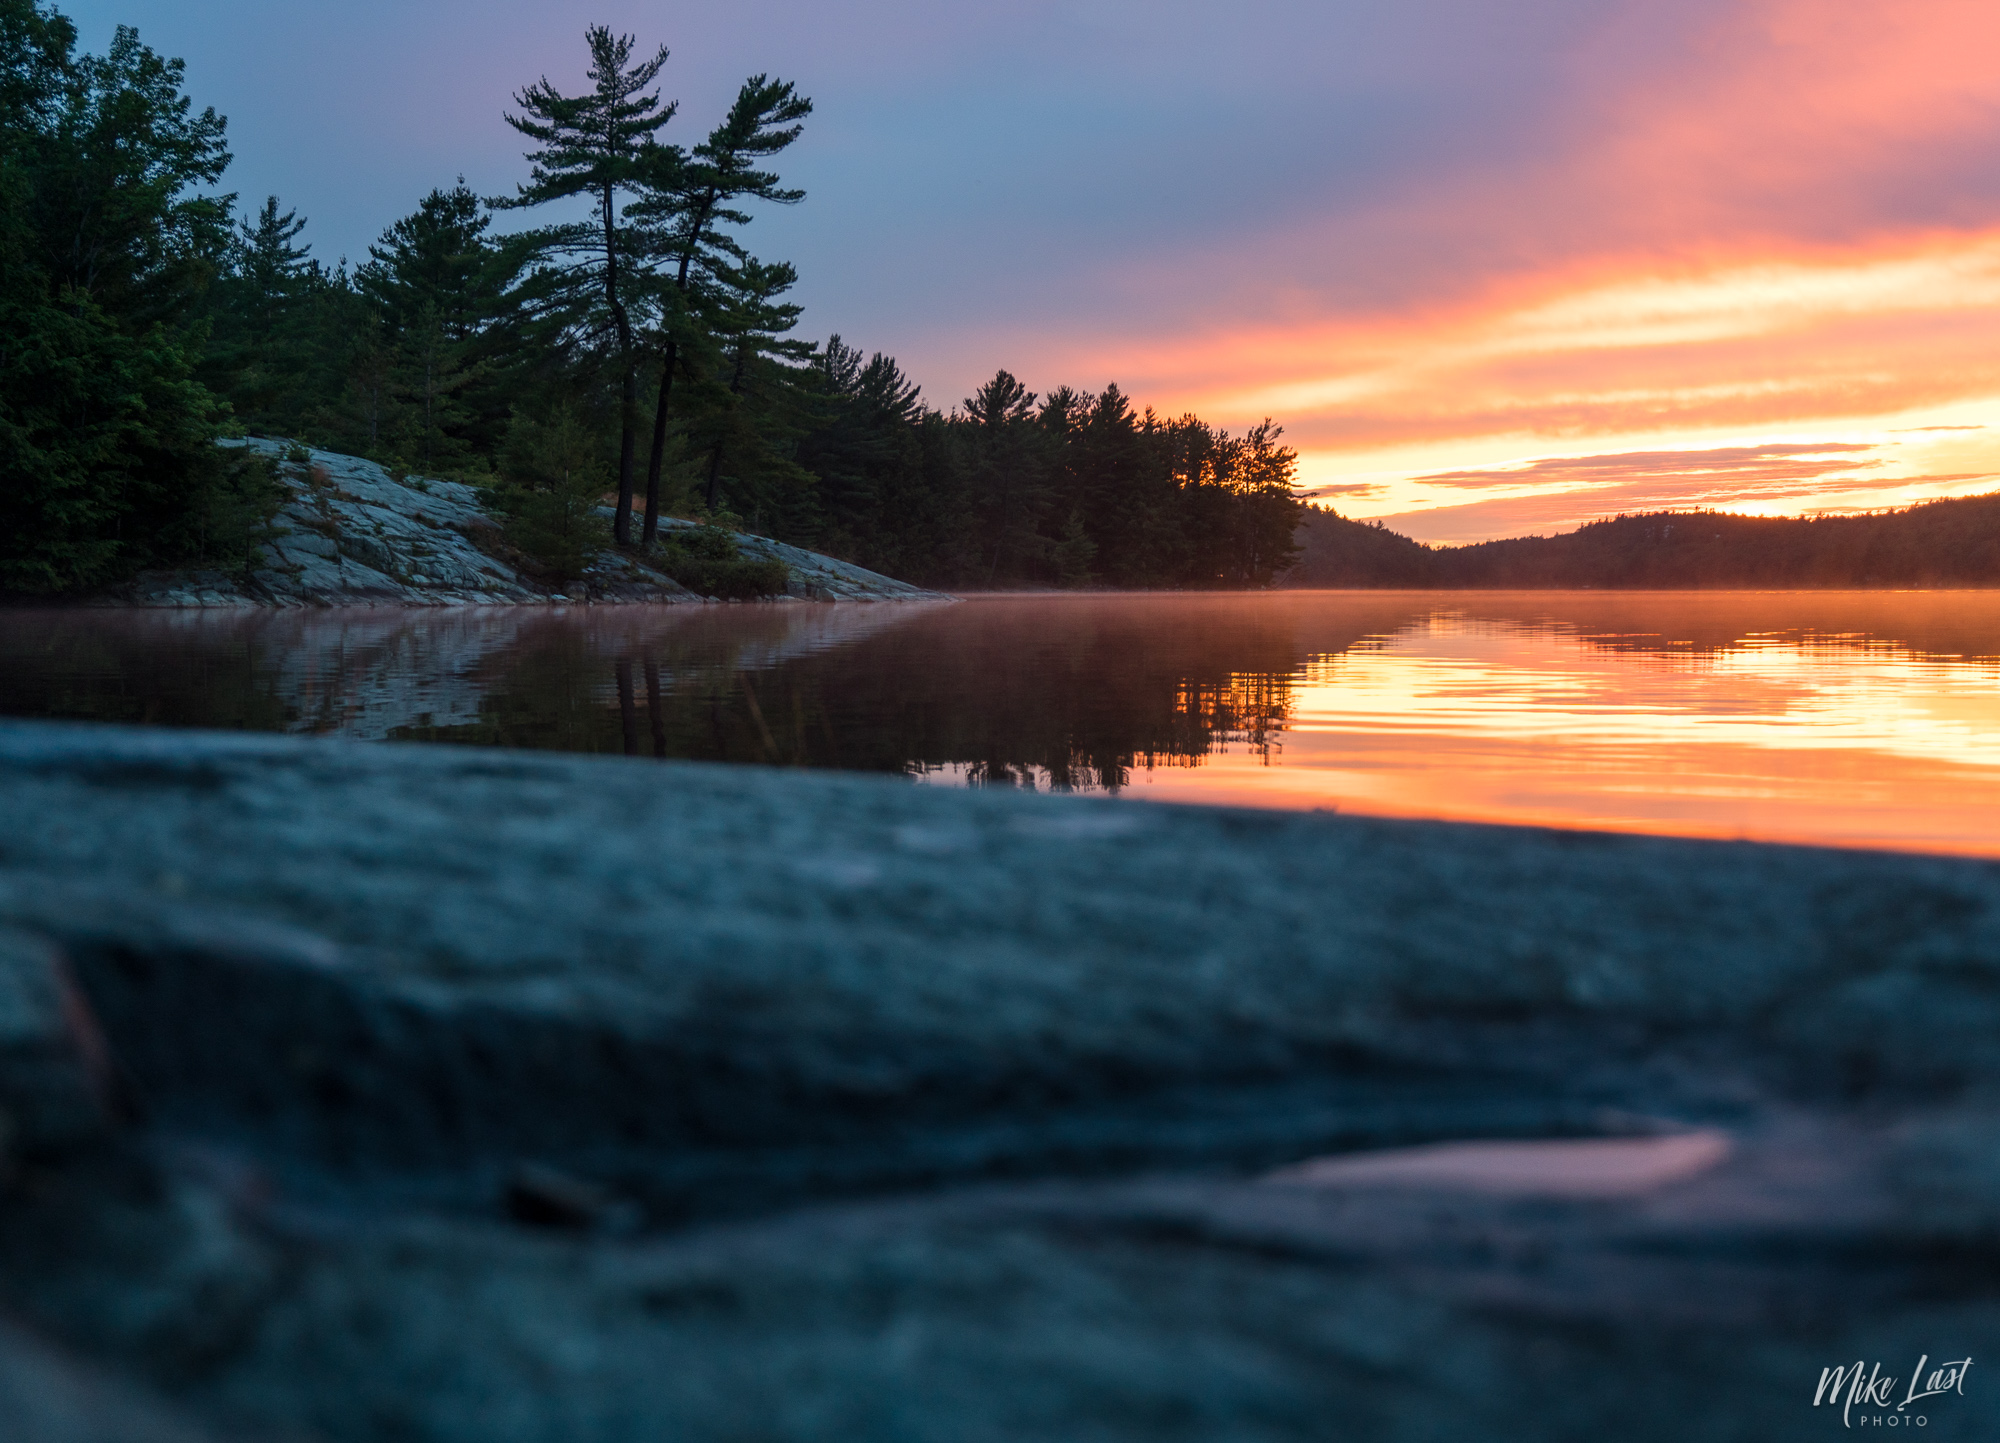 Sunset from David Lake - Killarney Provincial Park